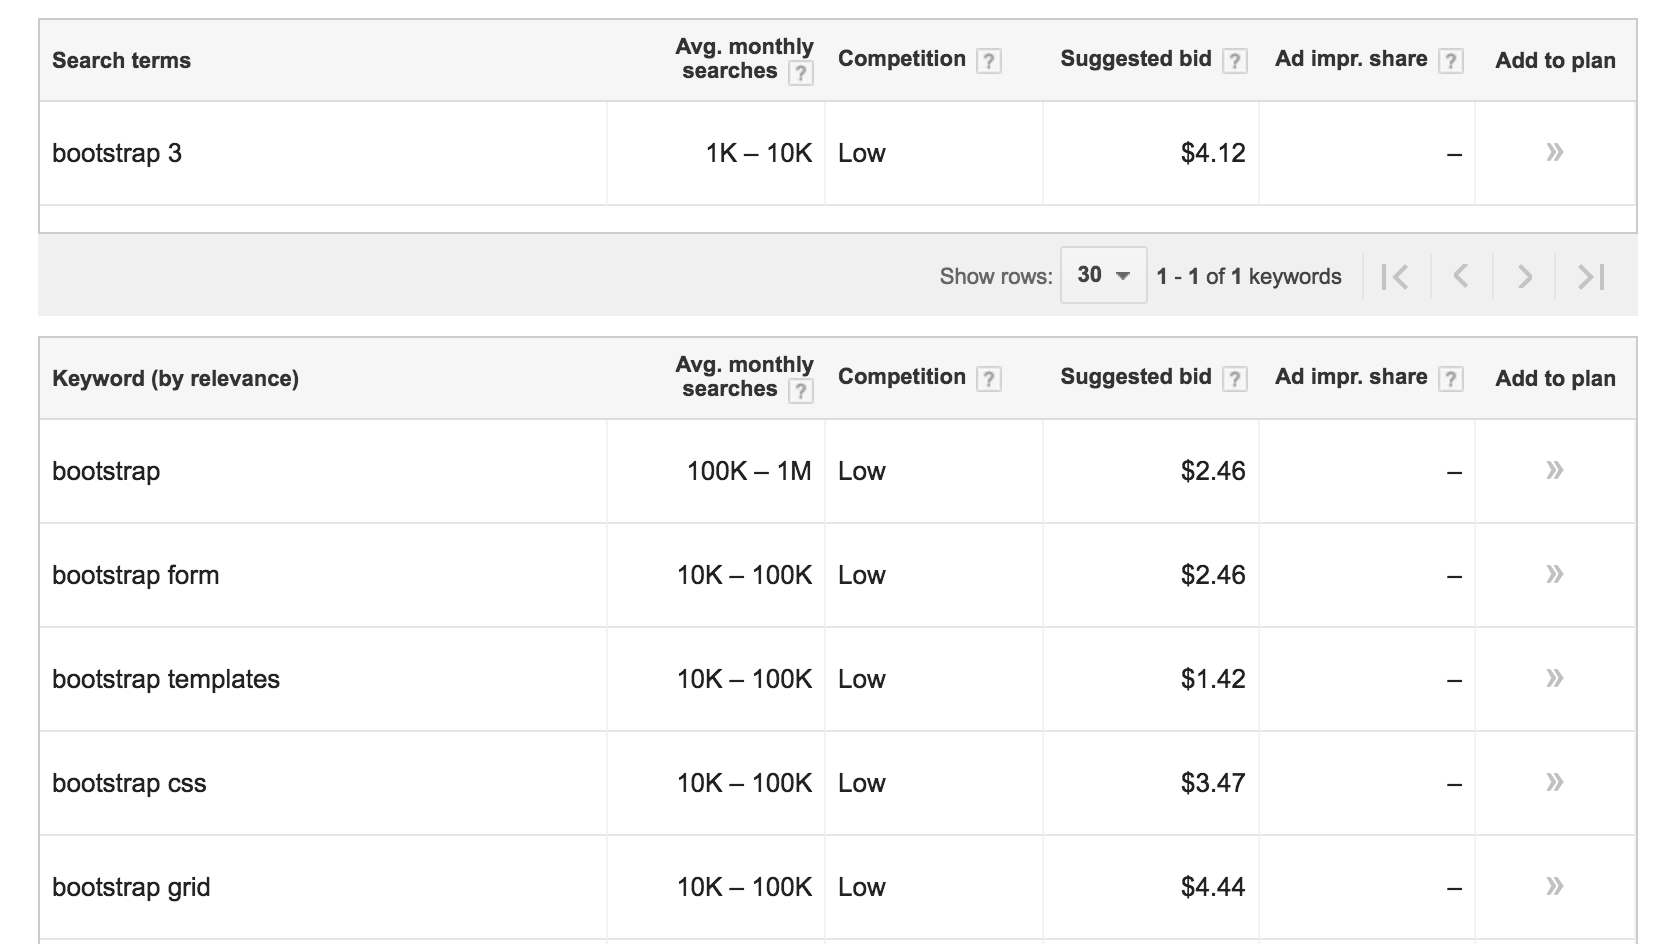 Google Keyword planner bootstrap 3 search terms